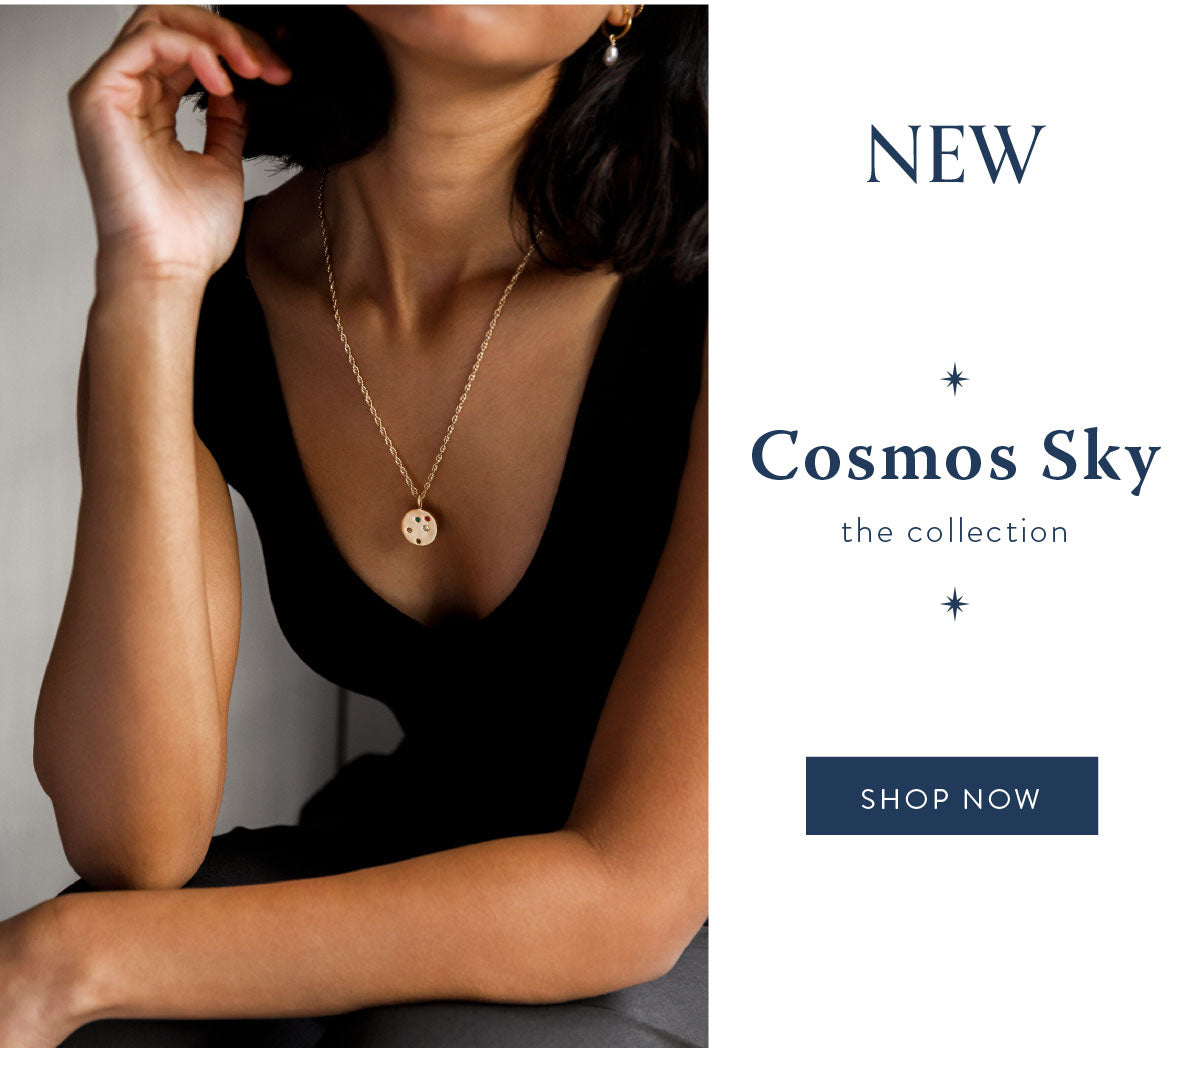 Shop the new cosmos sky collection